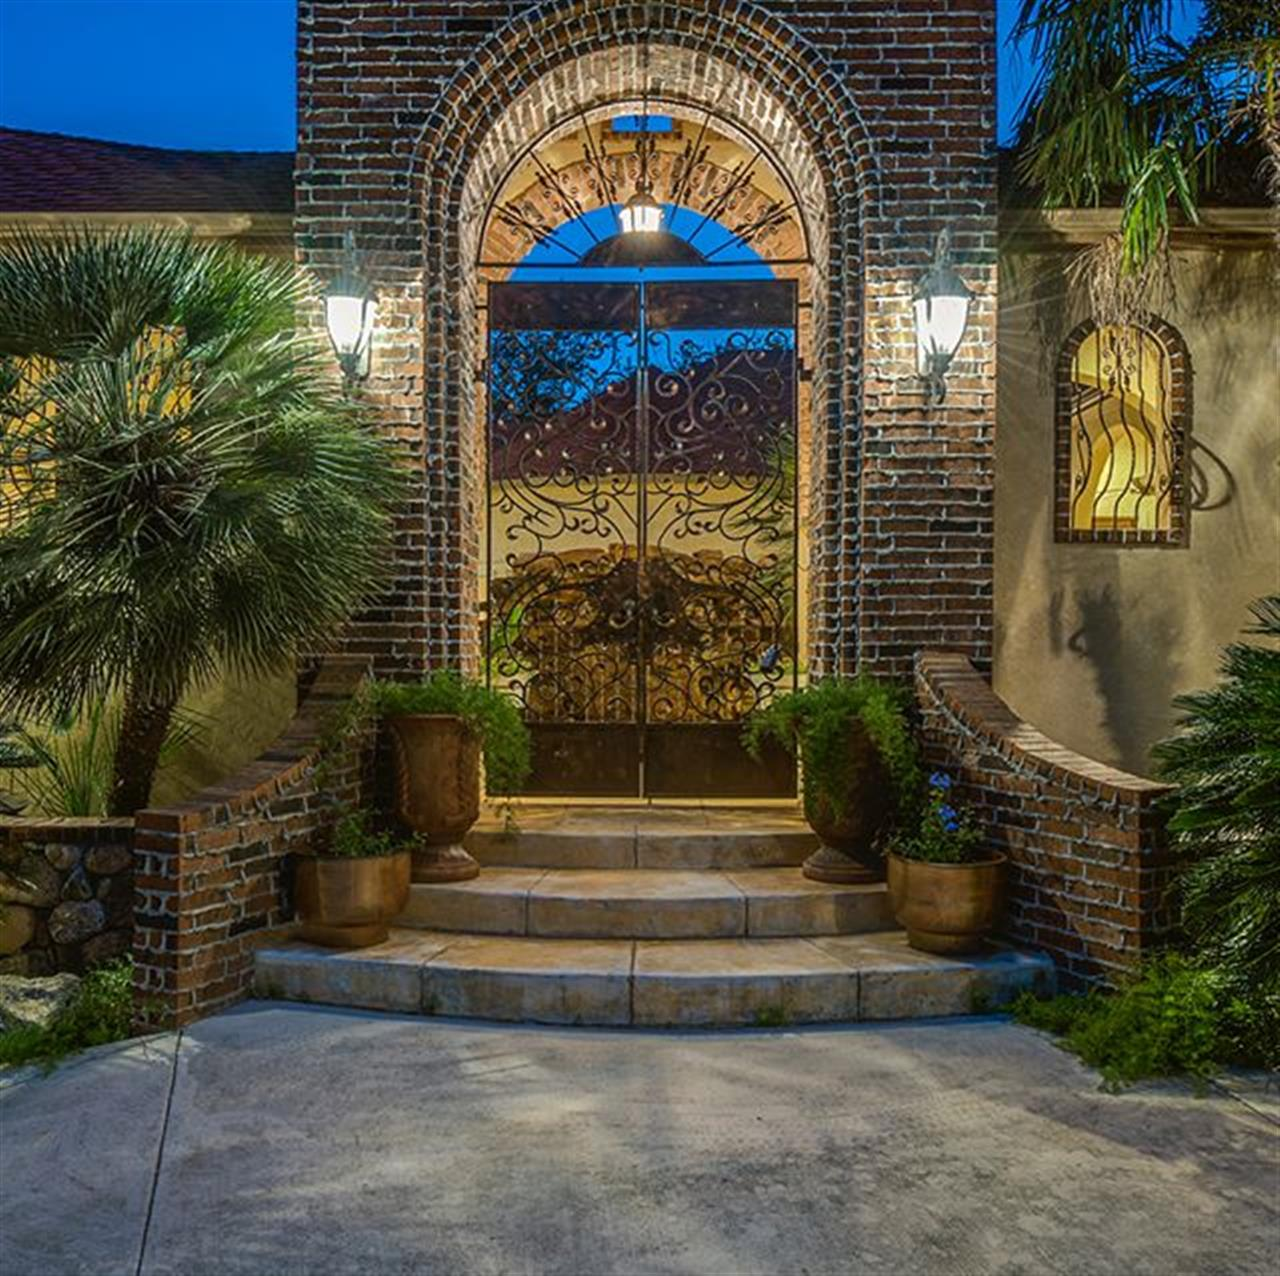 Luxury of The Day: 2611 Wilderness Way in #ChampionsVillage, listed by @maryrhodes56. Built by Parker Distinguished Homes, this one-of-a-kind home exudes Old World charm.